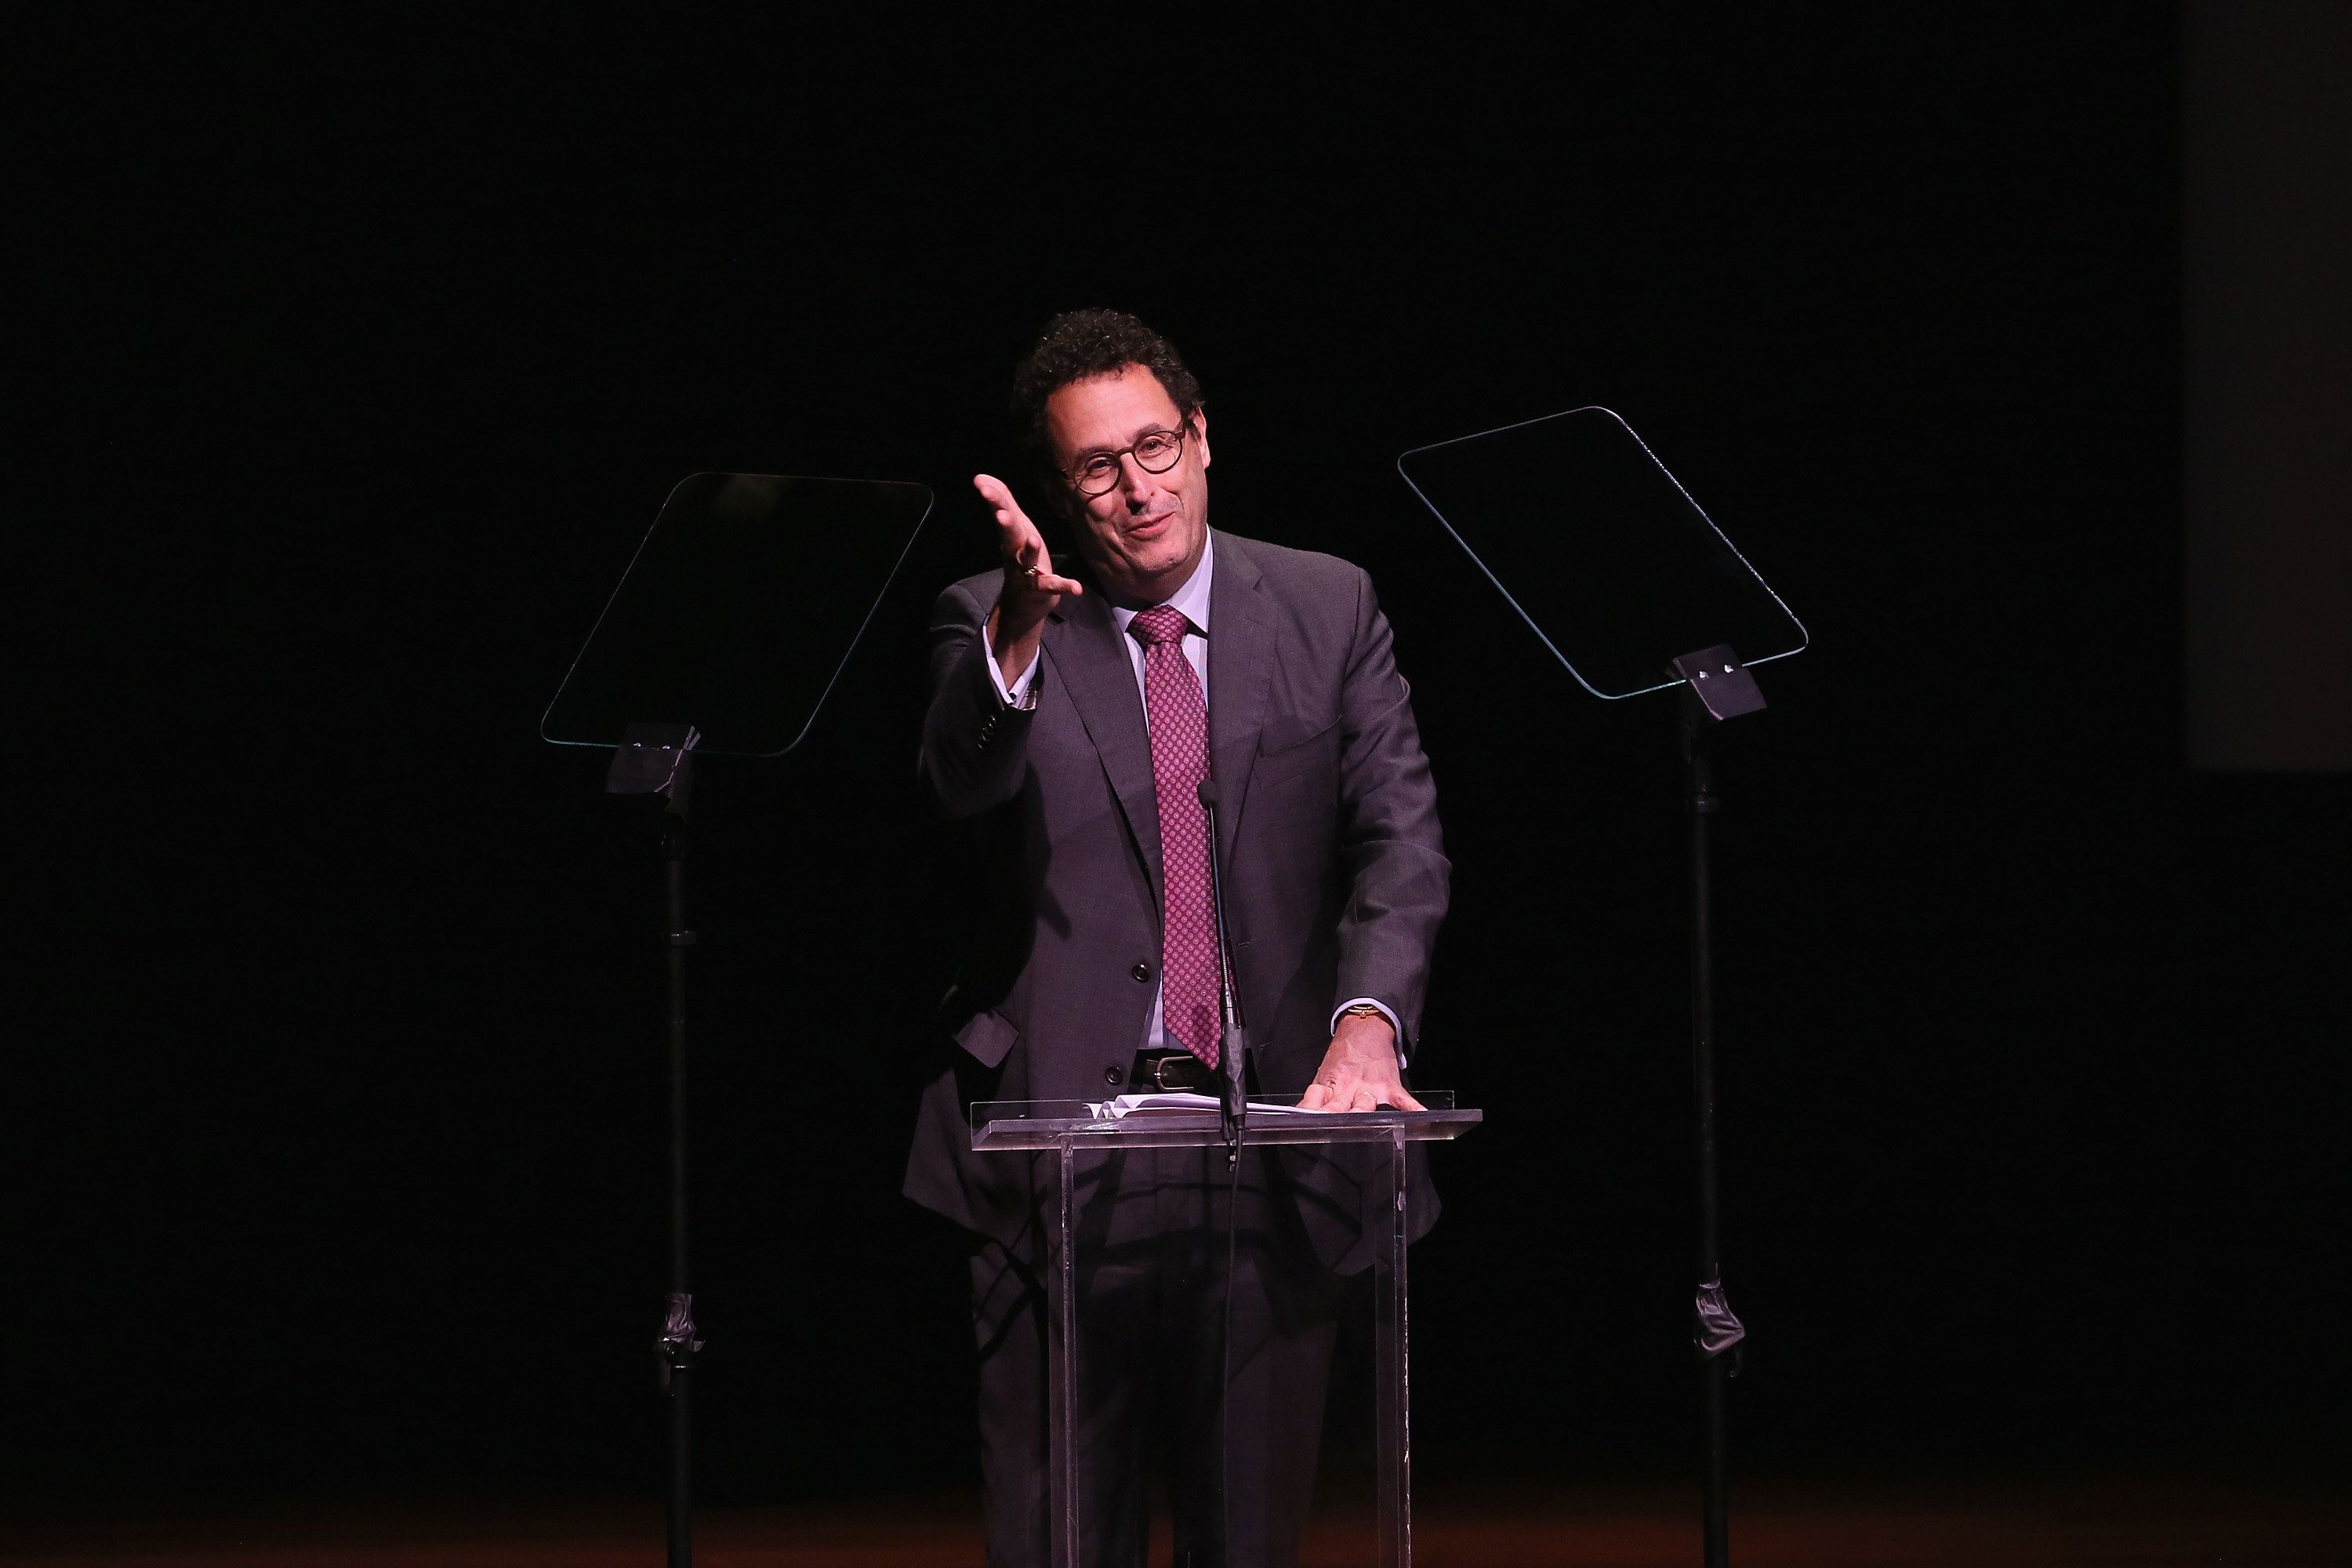 NEW YORK, NY - MAY 10:  Tony Kushner speaks onstage at the 30th Annual Lucille Lortel Awards at NYU Skirball Center on May 10, 2015 in New York City.  (Photo by Jemal Countess/Getty Images for The Lucille Lortel Awards)